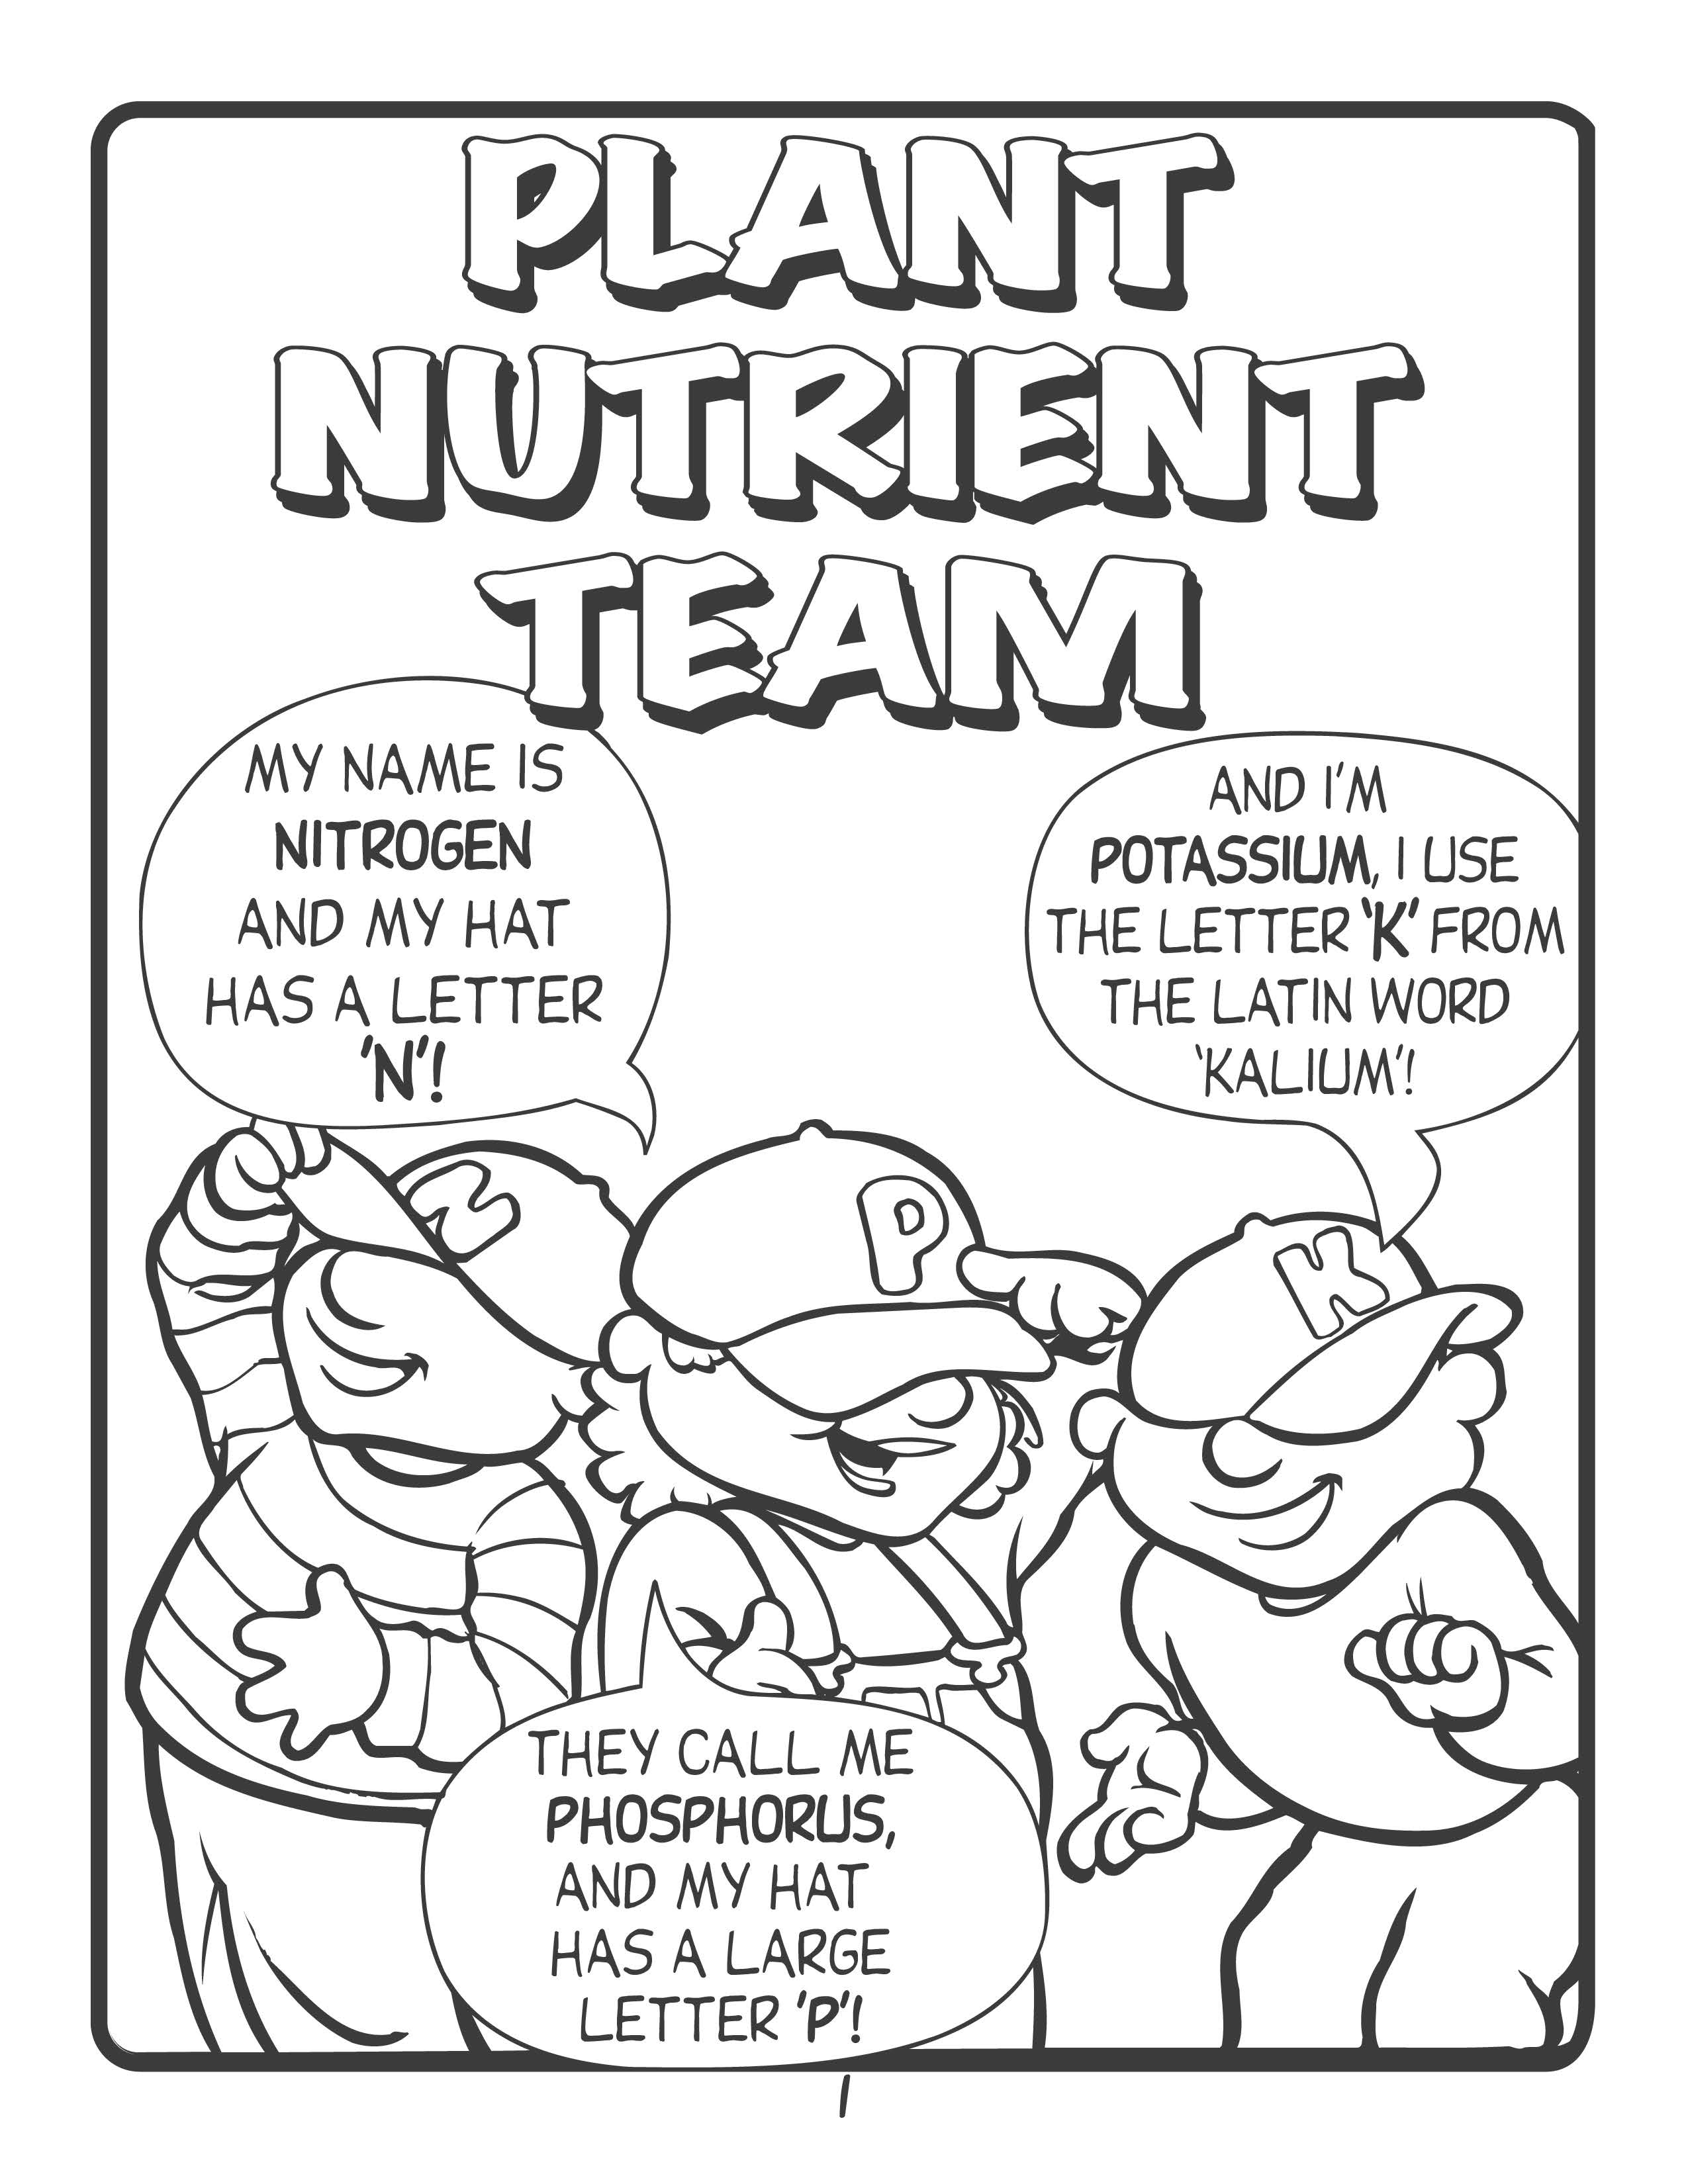 Free Downloads: Fun With the Plant Nutrient Team